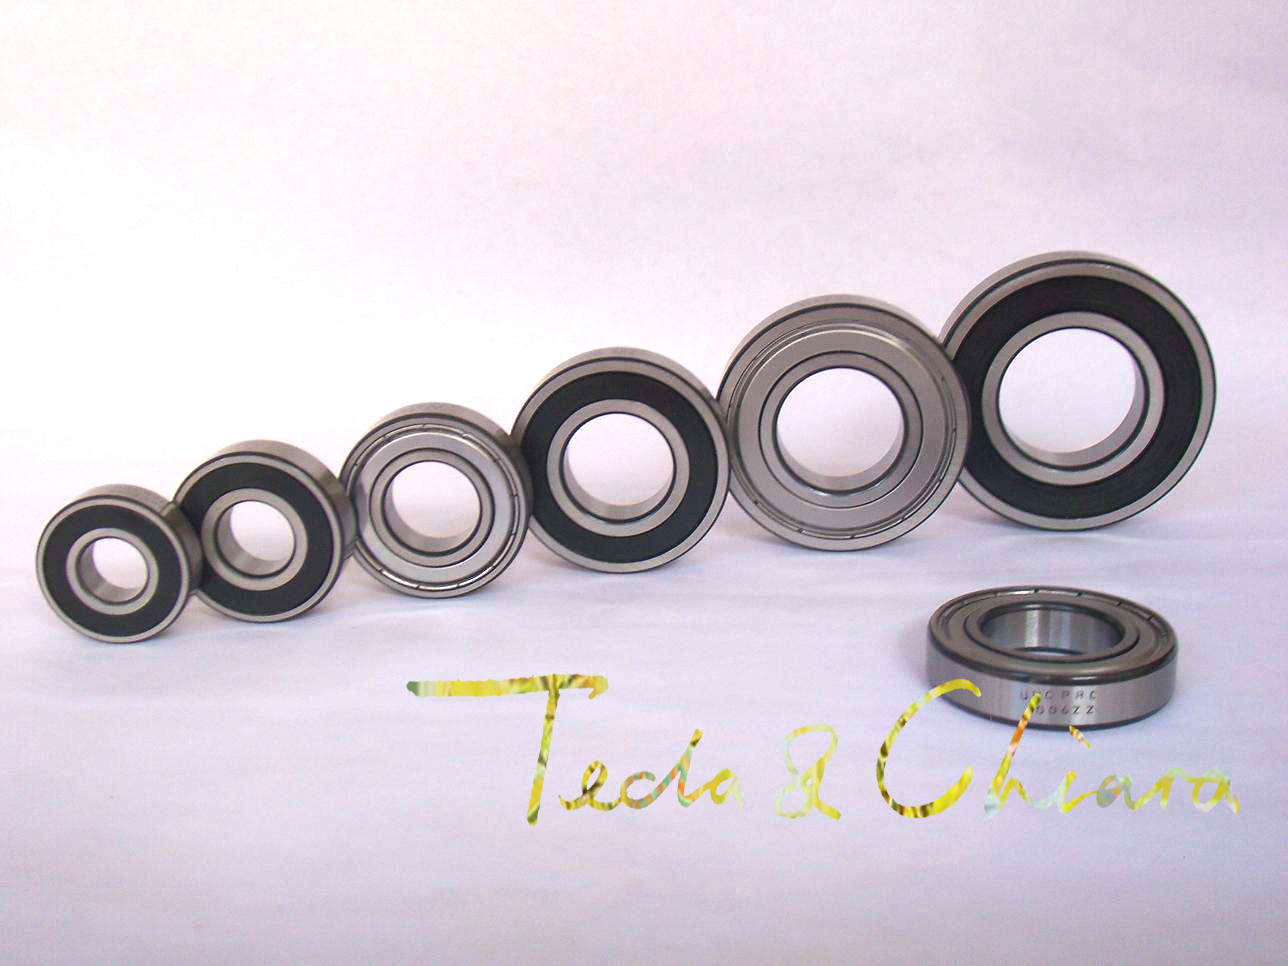 6204 6204ZZ 6204RS 6204-2Z 6204Z 6204-2RS ZZ RS RZ 2RZ Deep Groove Ball Bearings 20 x 47 x 14mm High Quality free shipping 25x47x12mm deep groove ball bearings 6005 zz 2z 6005zz bearing 6005zz 6005 2rs